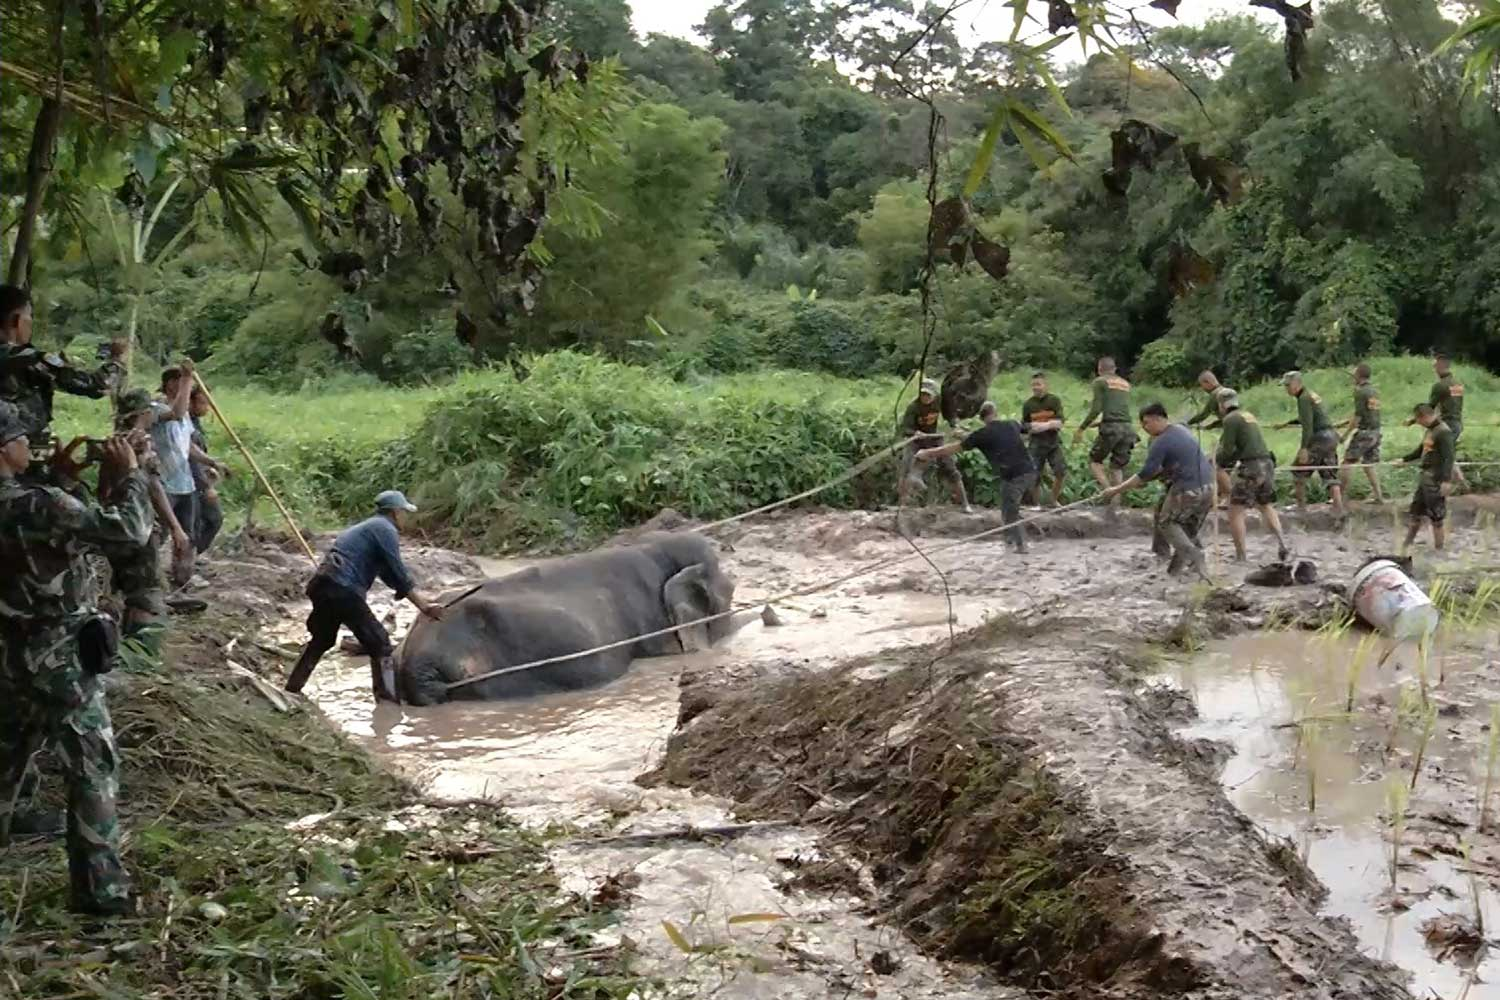 Park rangers pull a wild elephant from a pool of mud in Phu Phan district of Sakon Nakhon province on Sunday. (Photo by Pratuan Kajonvuttinun)